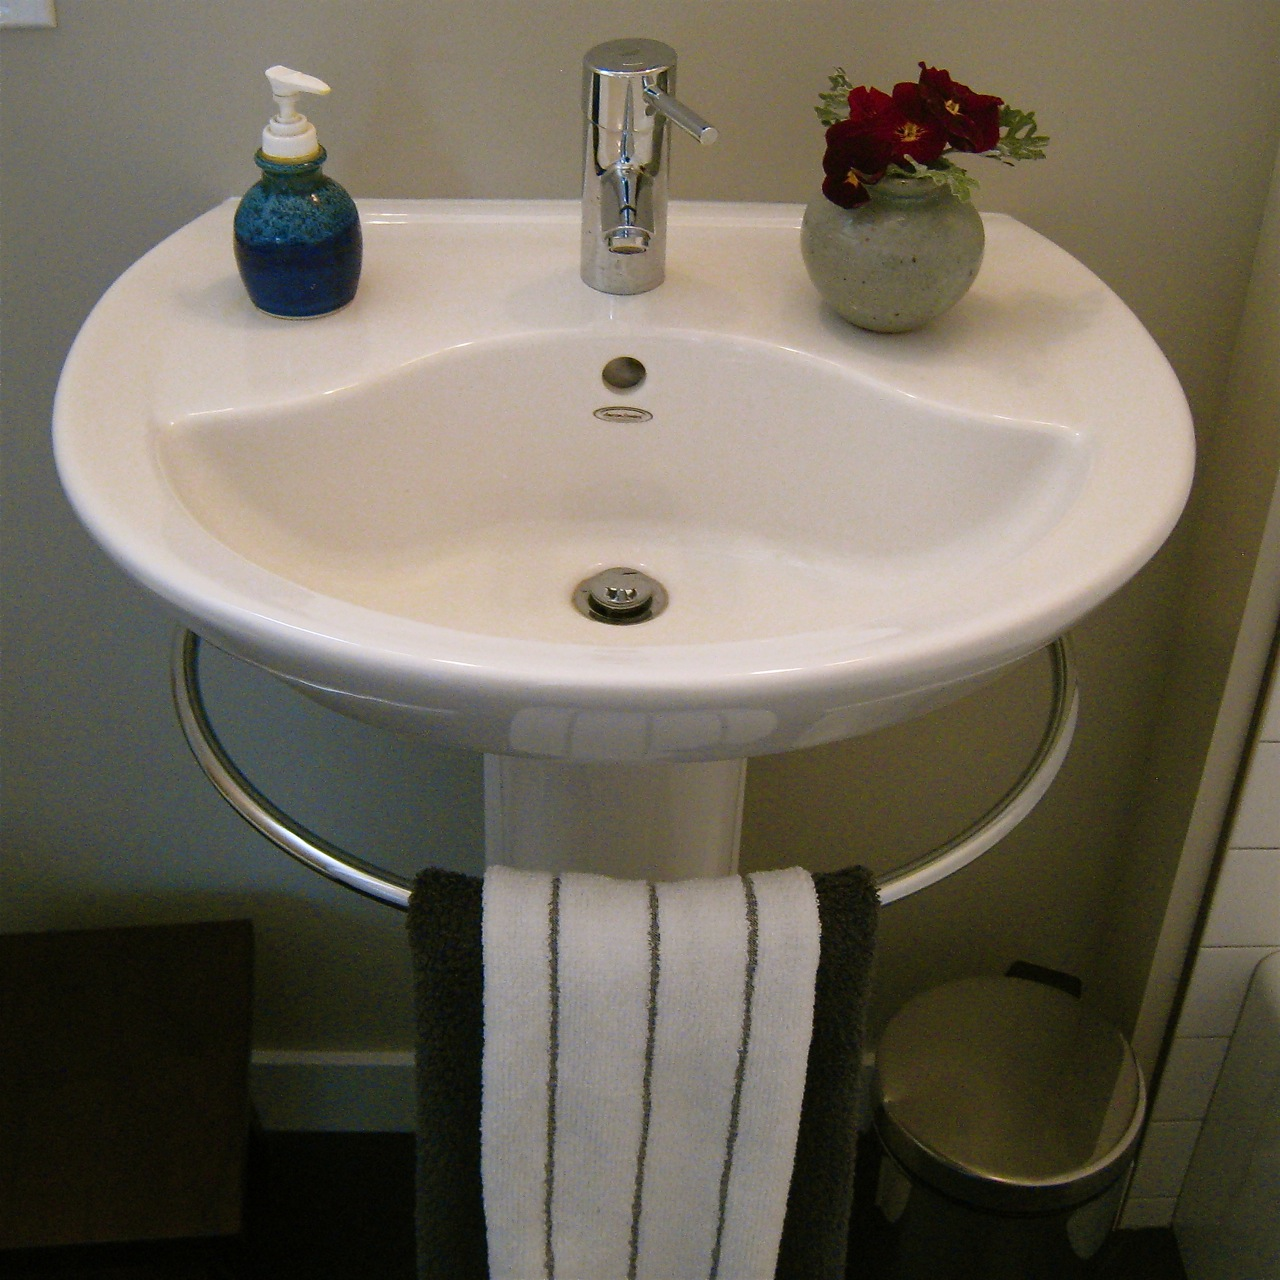 Sink Wrap For Pedestal Sink : Pedestal sink towel bar. Genius! Theres no place like home... Pi ...